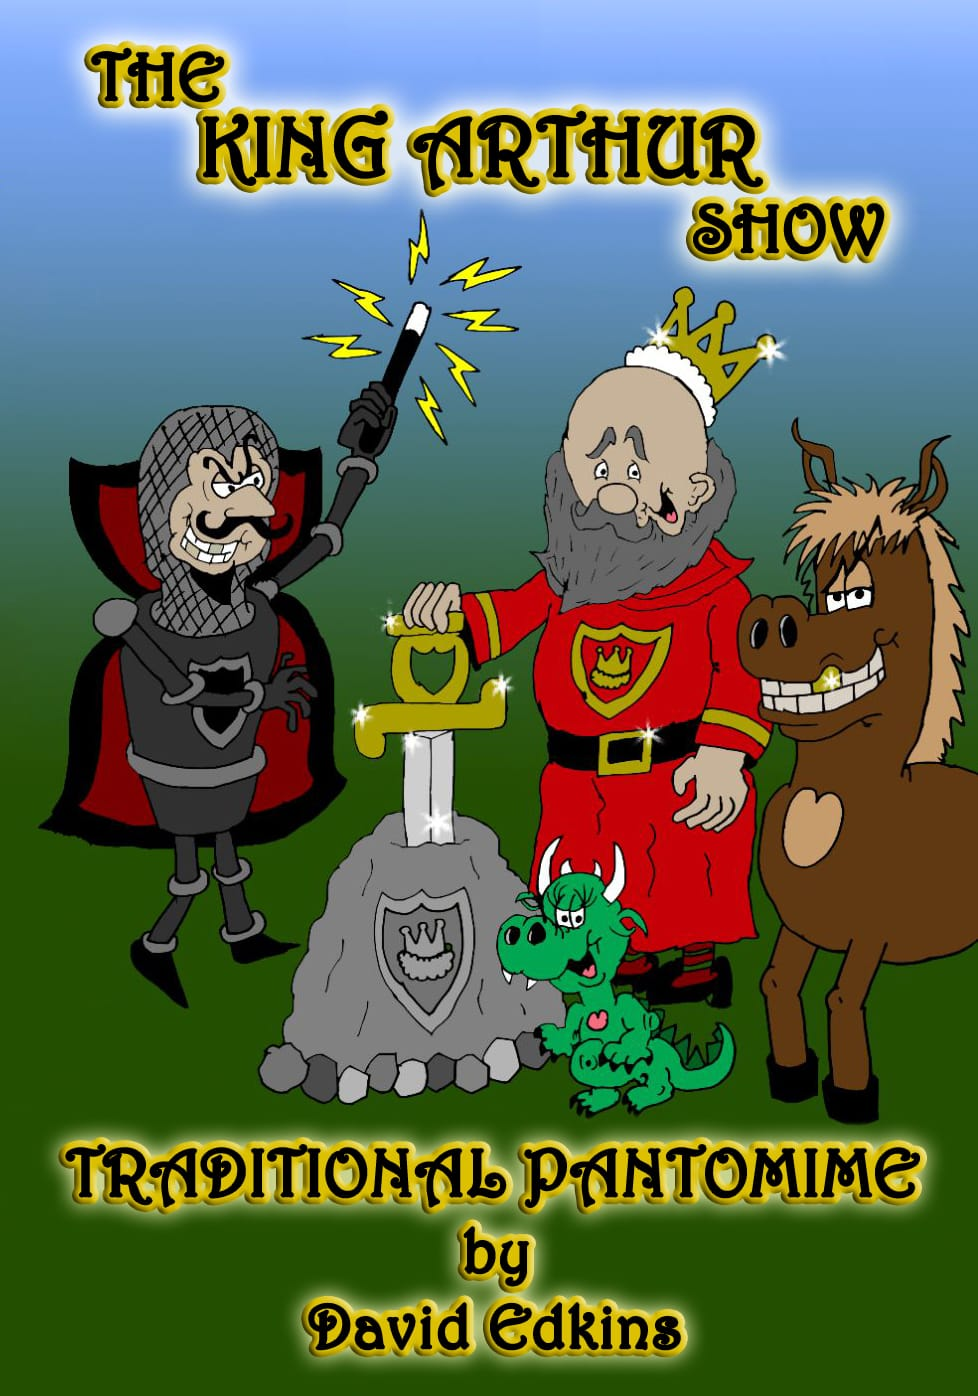 The King Arthur Show